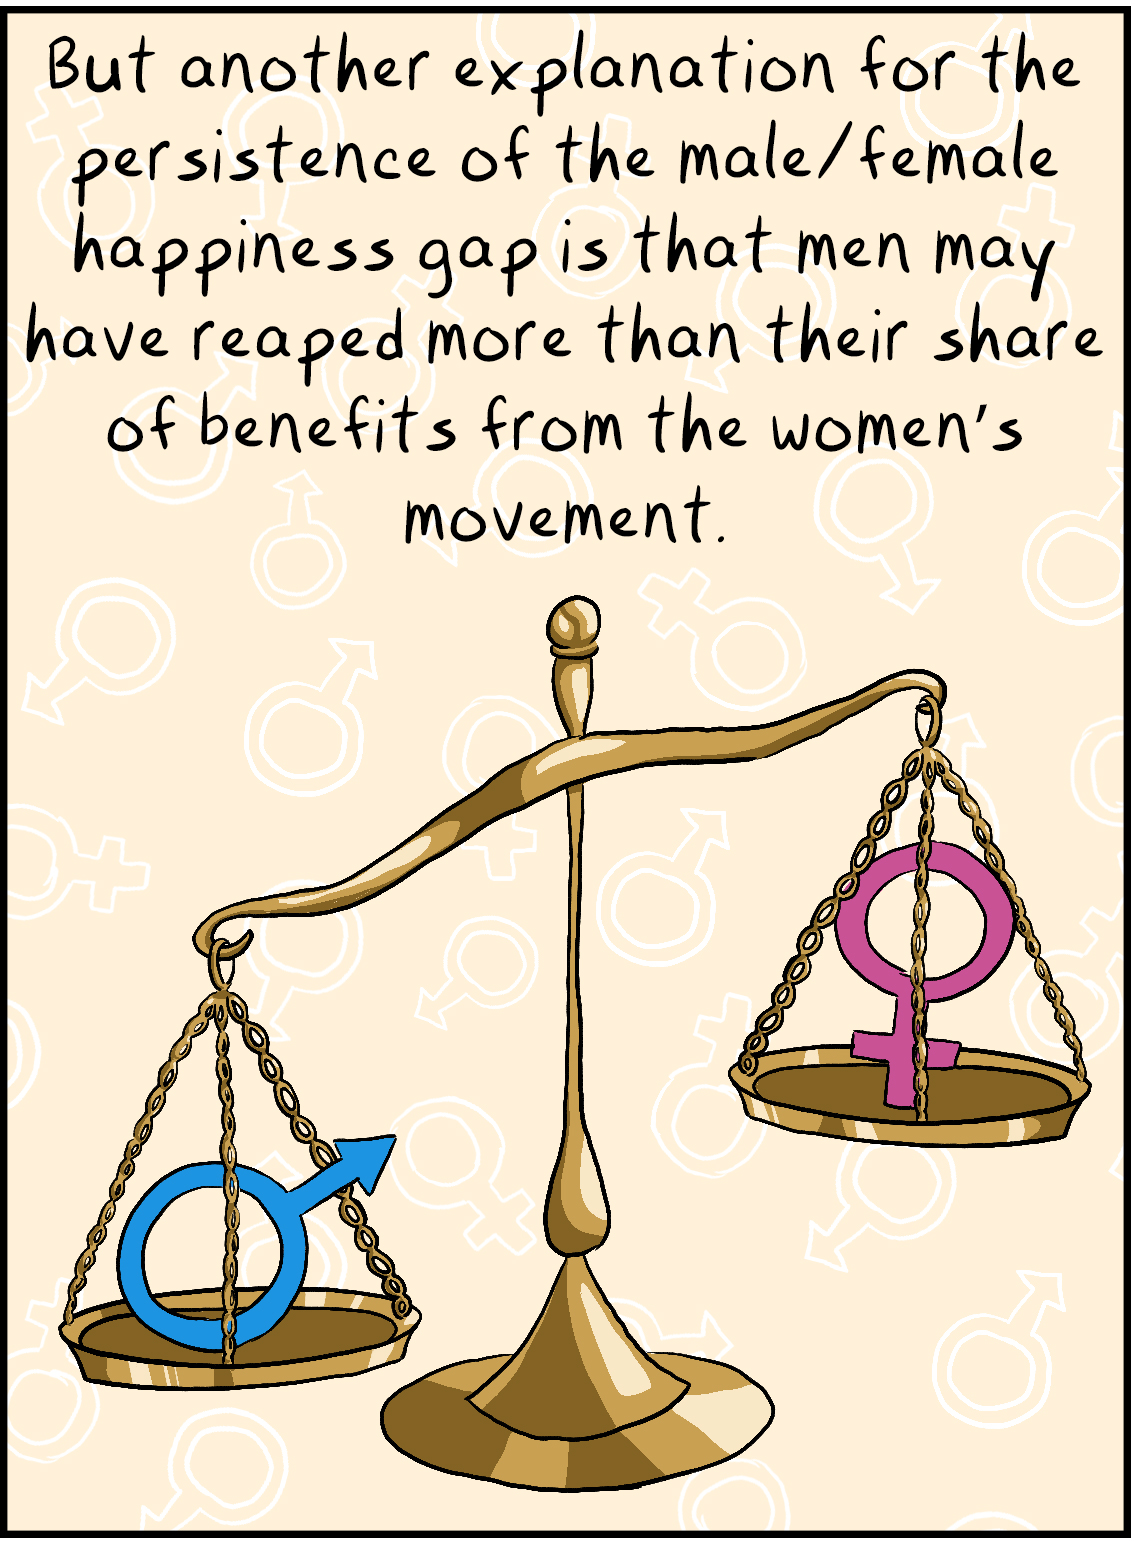 But another explanation for the persistence of the male/female happiness gap is that men may have reaped more than their share of benefits from the women's movement.